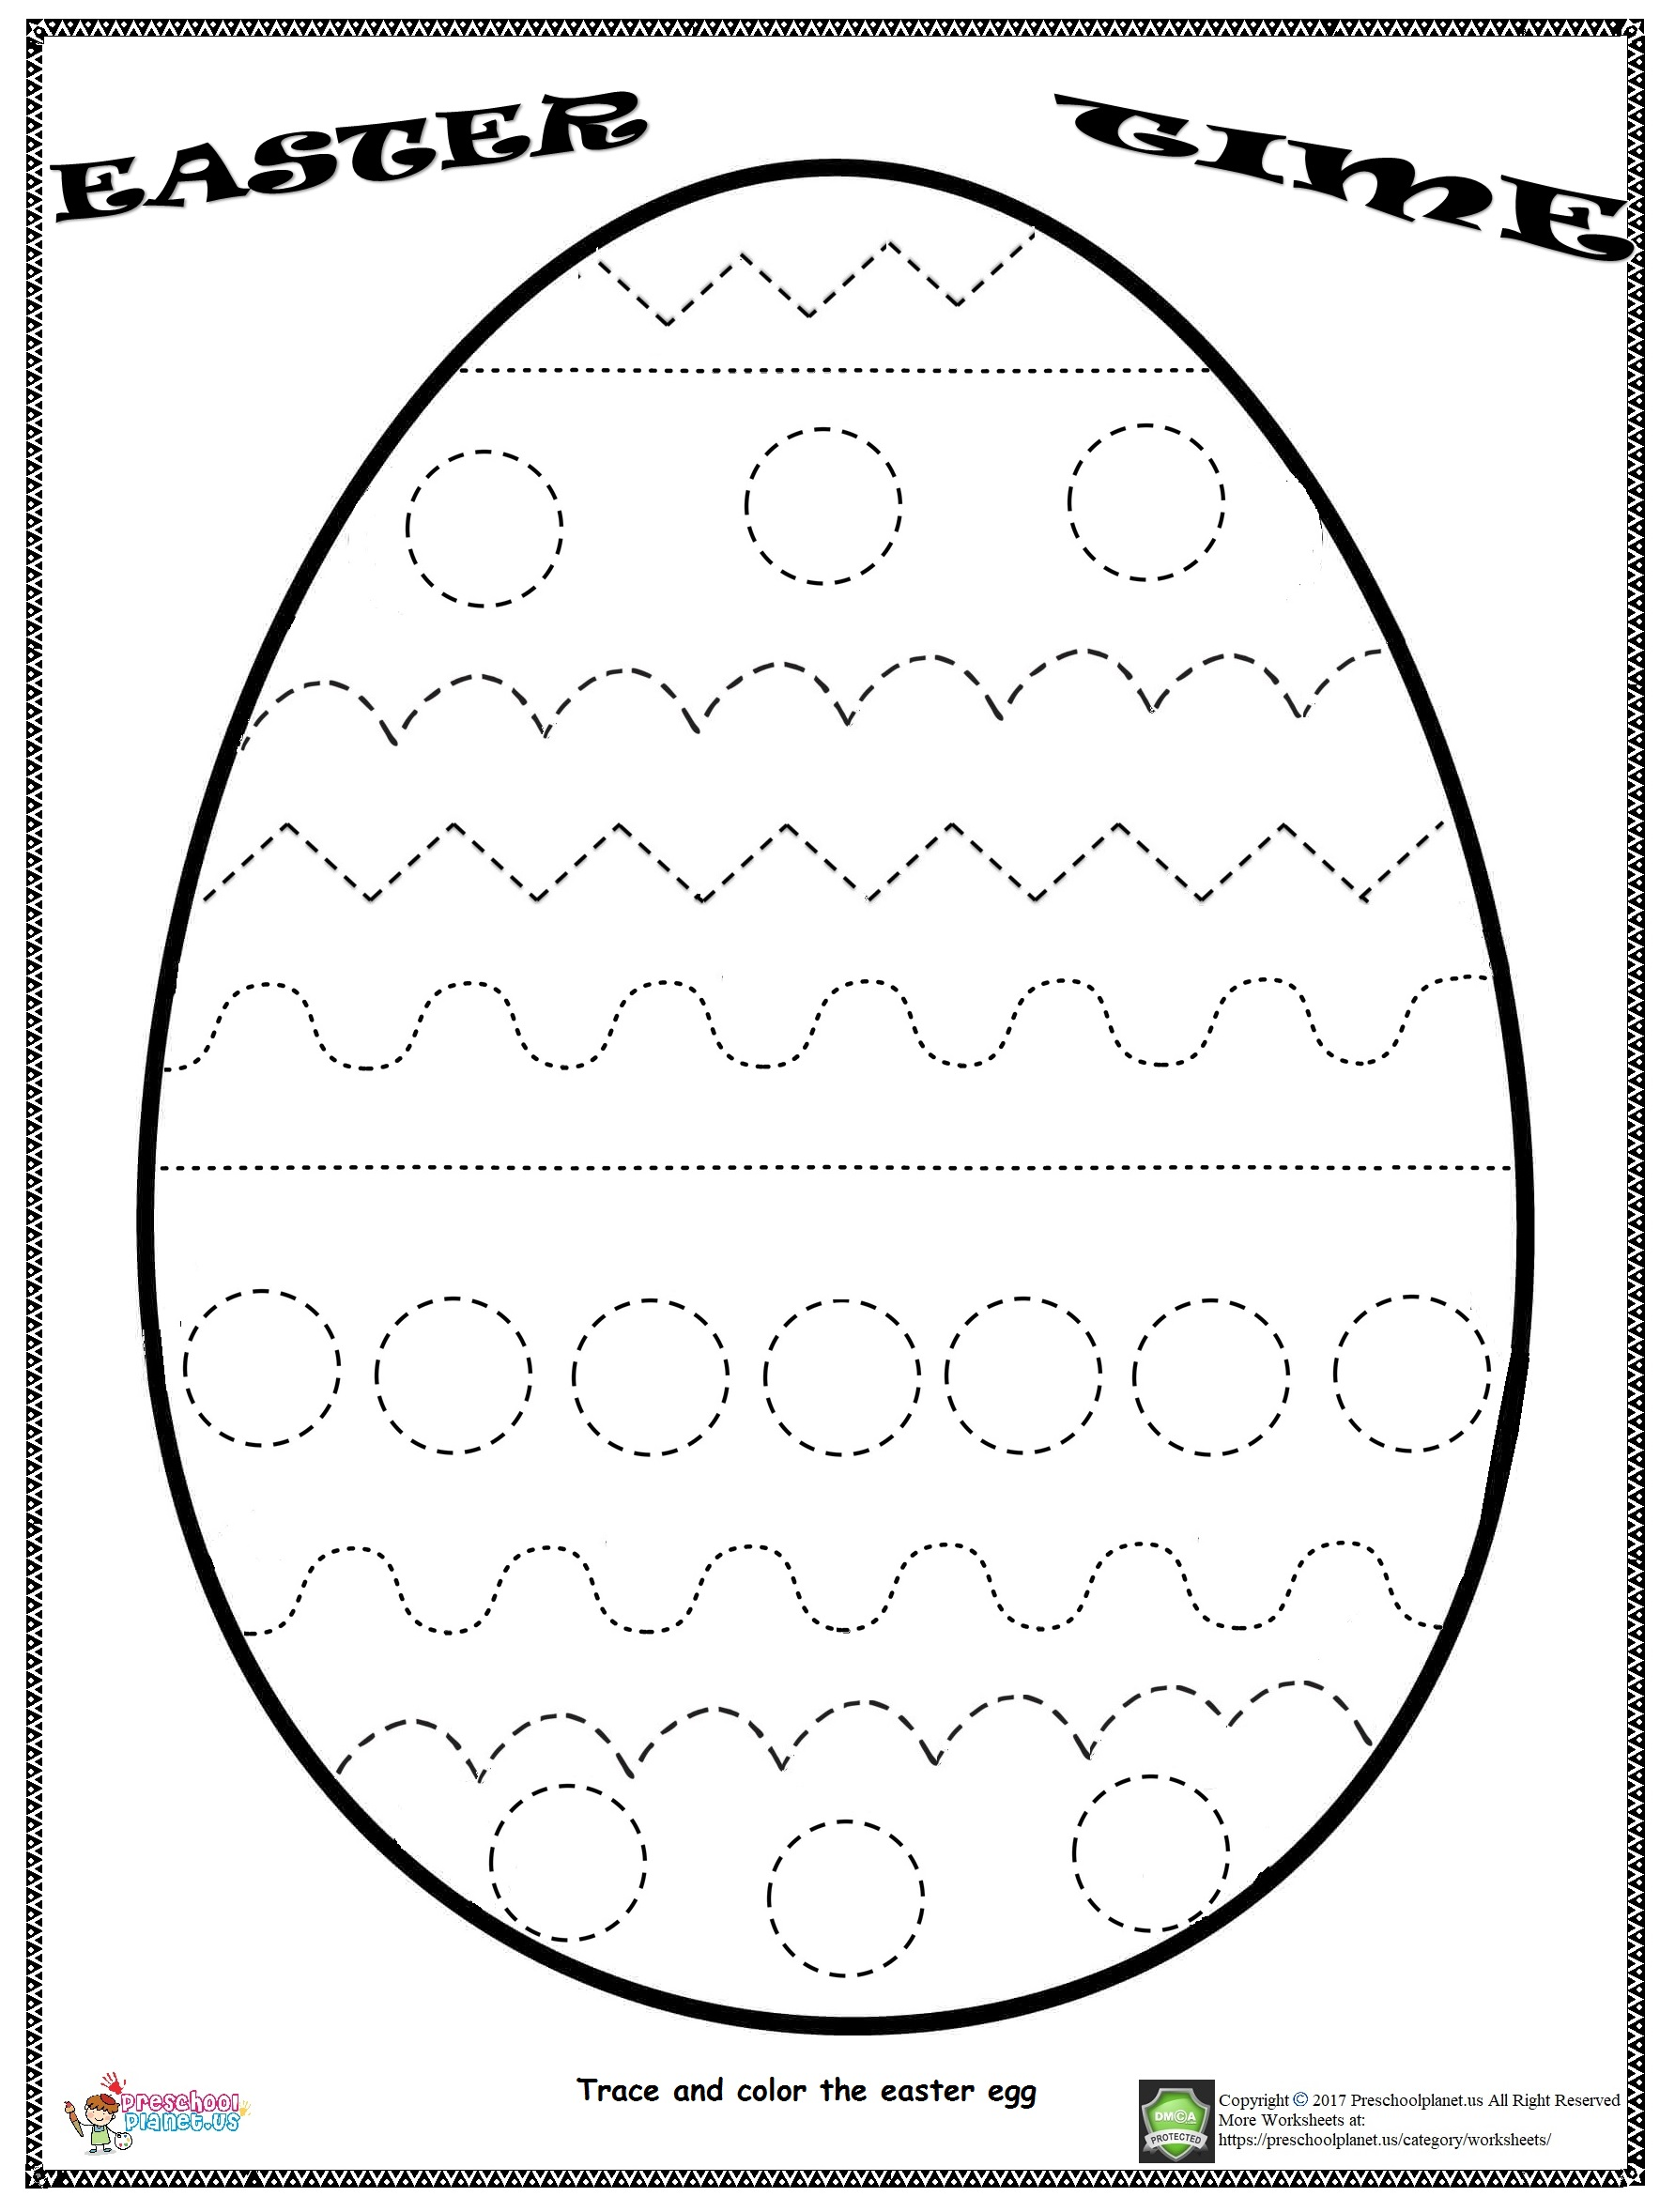 Worksheet For Easter